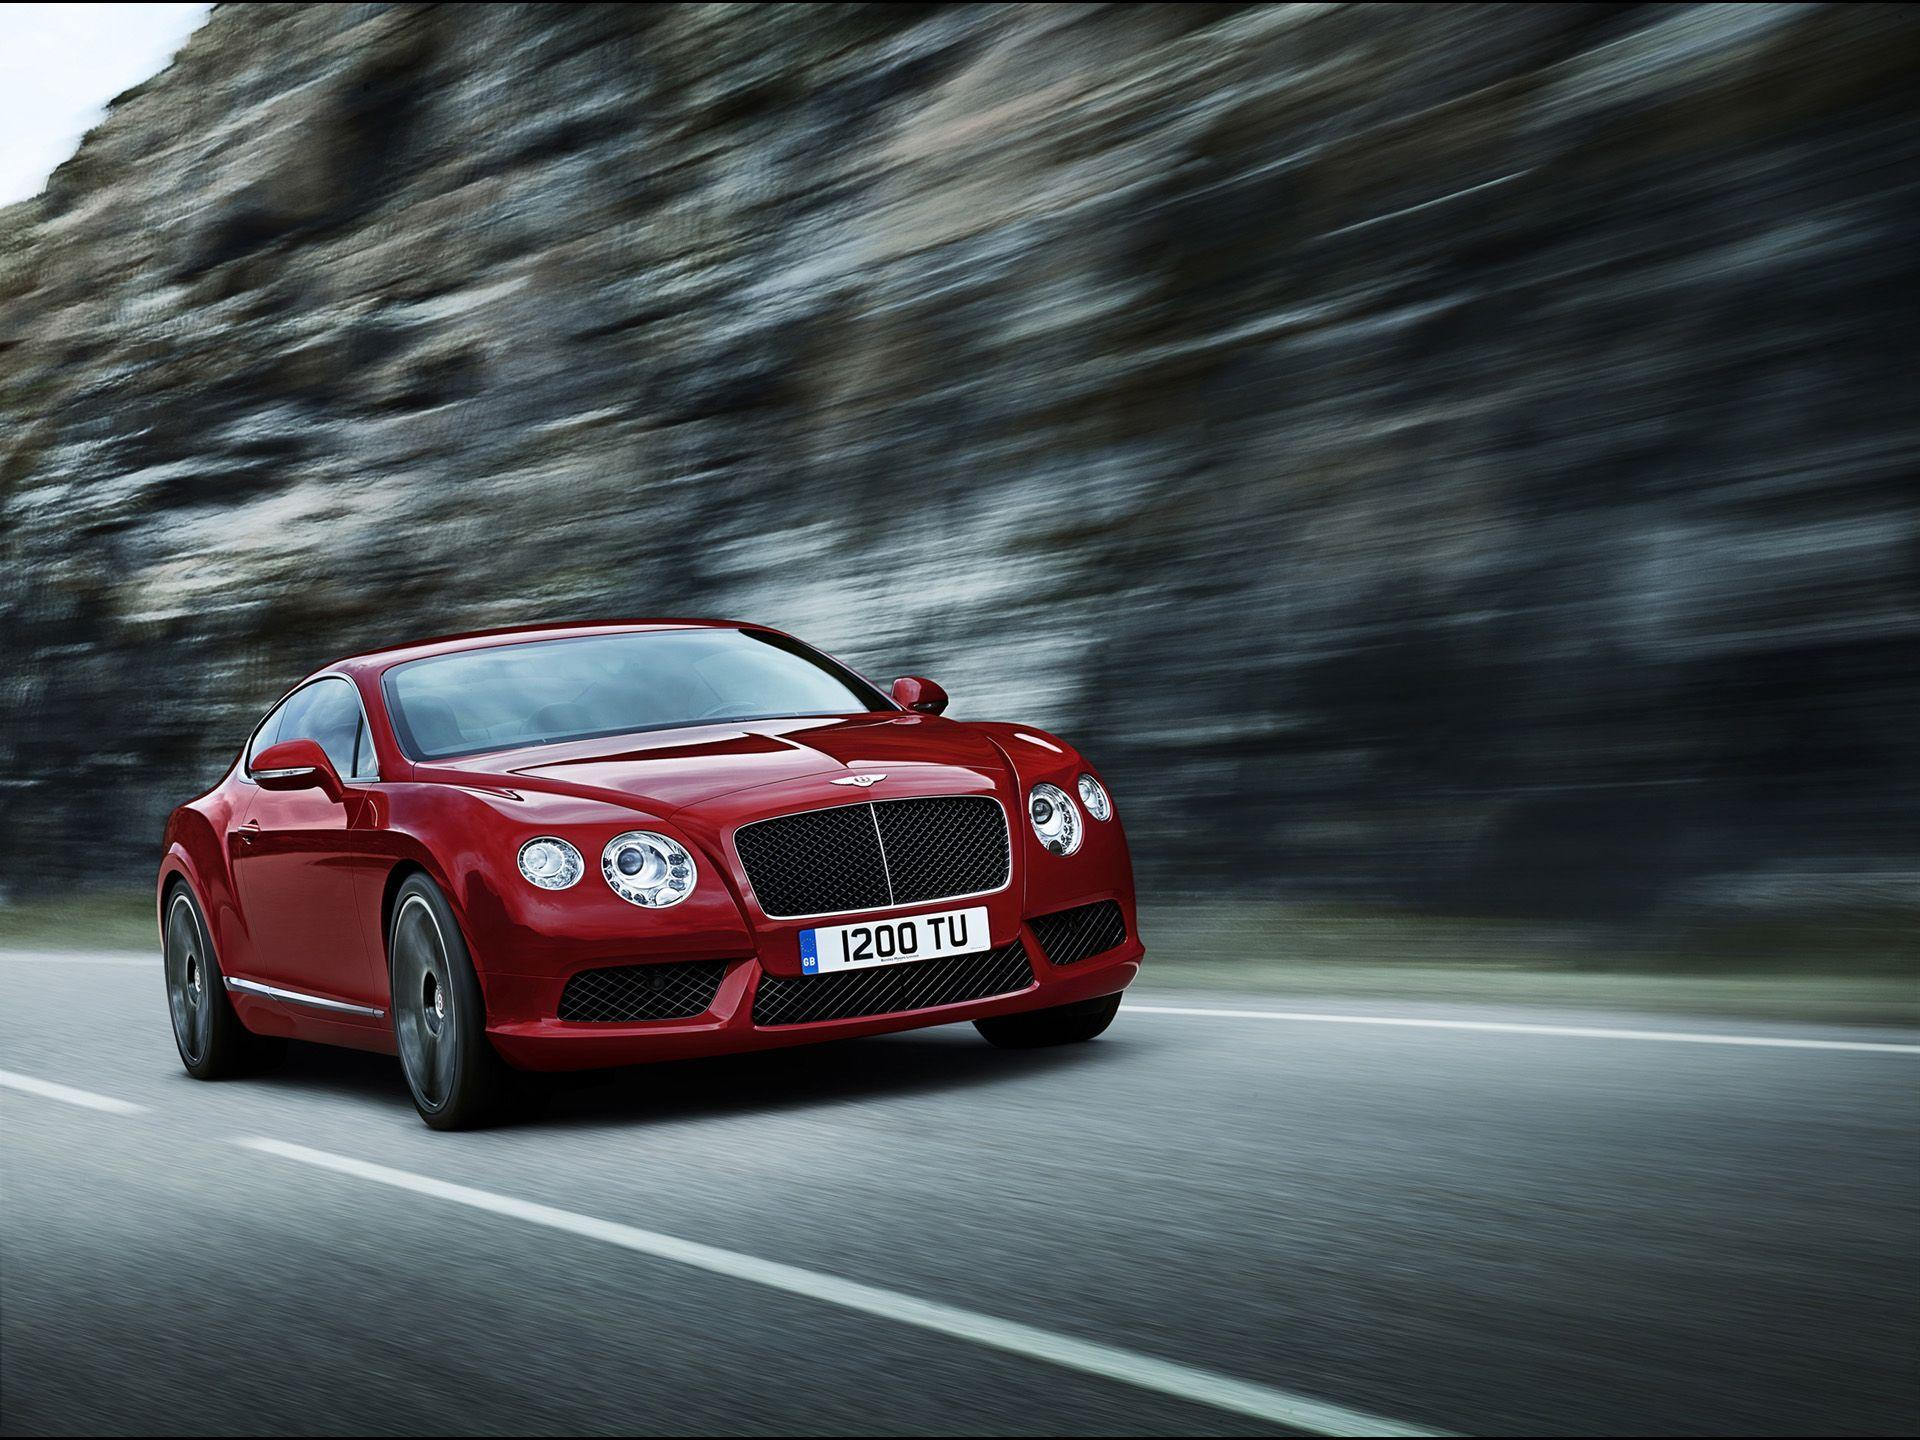 2012 Bentley Continental GT V8 - Red Front Angle Speed 2 ...